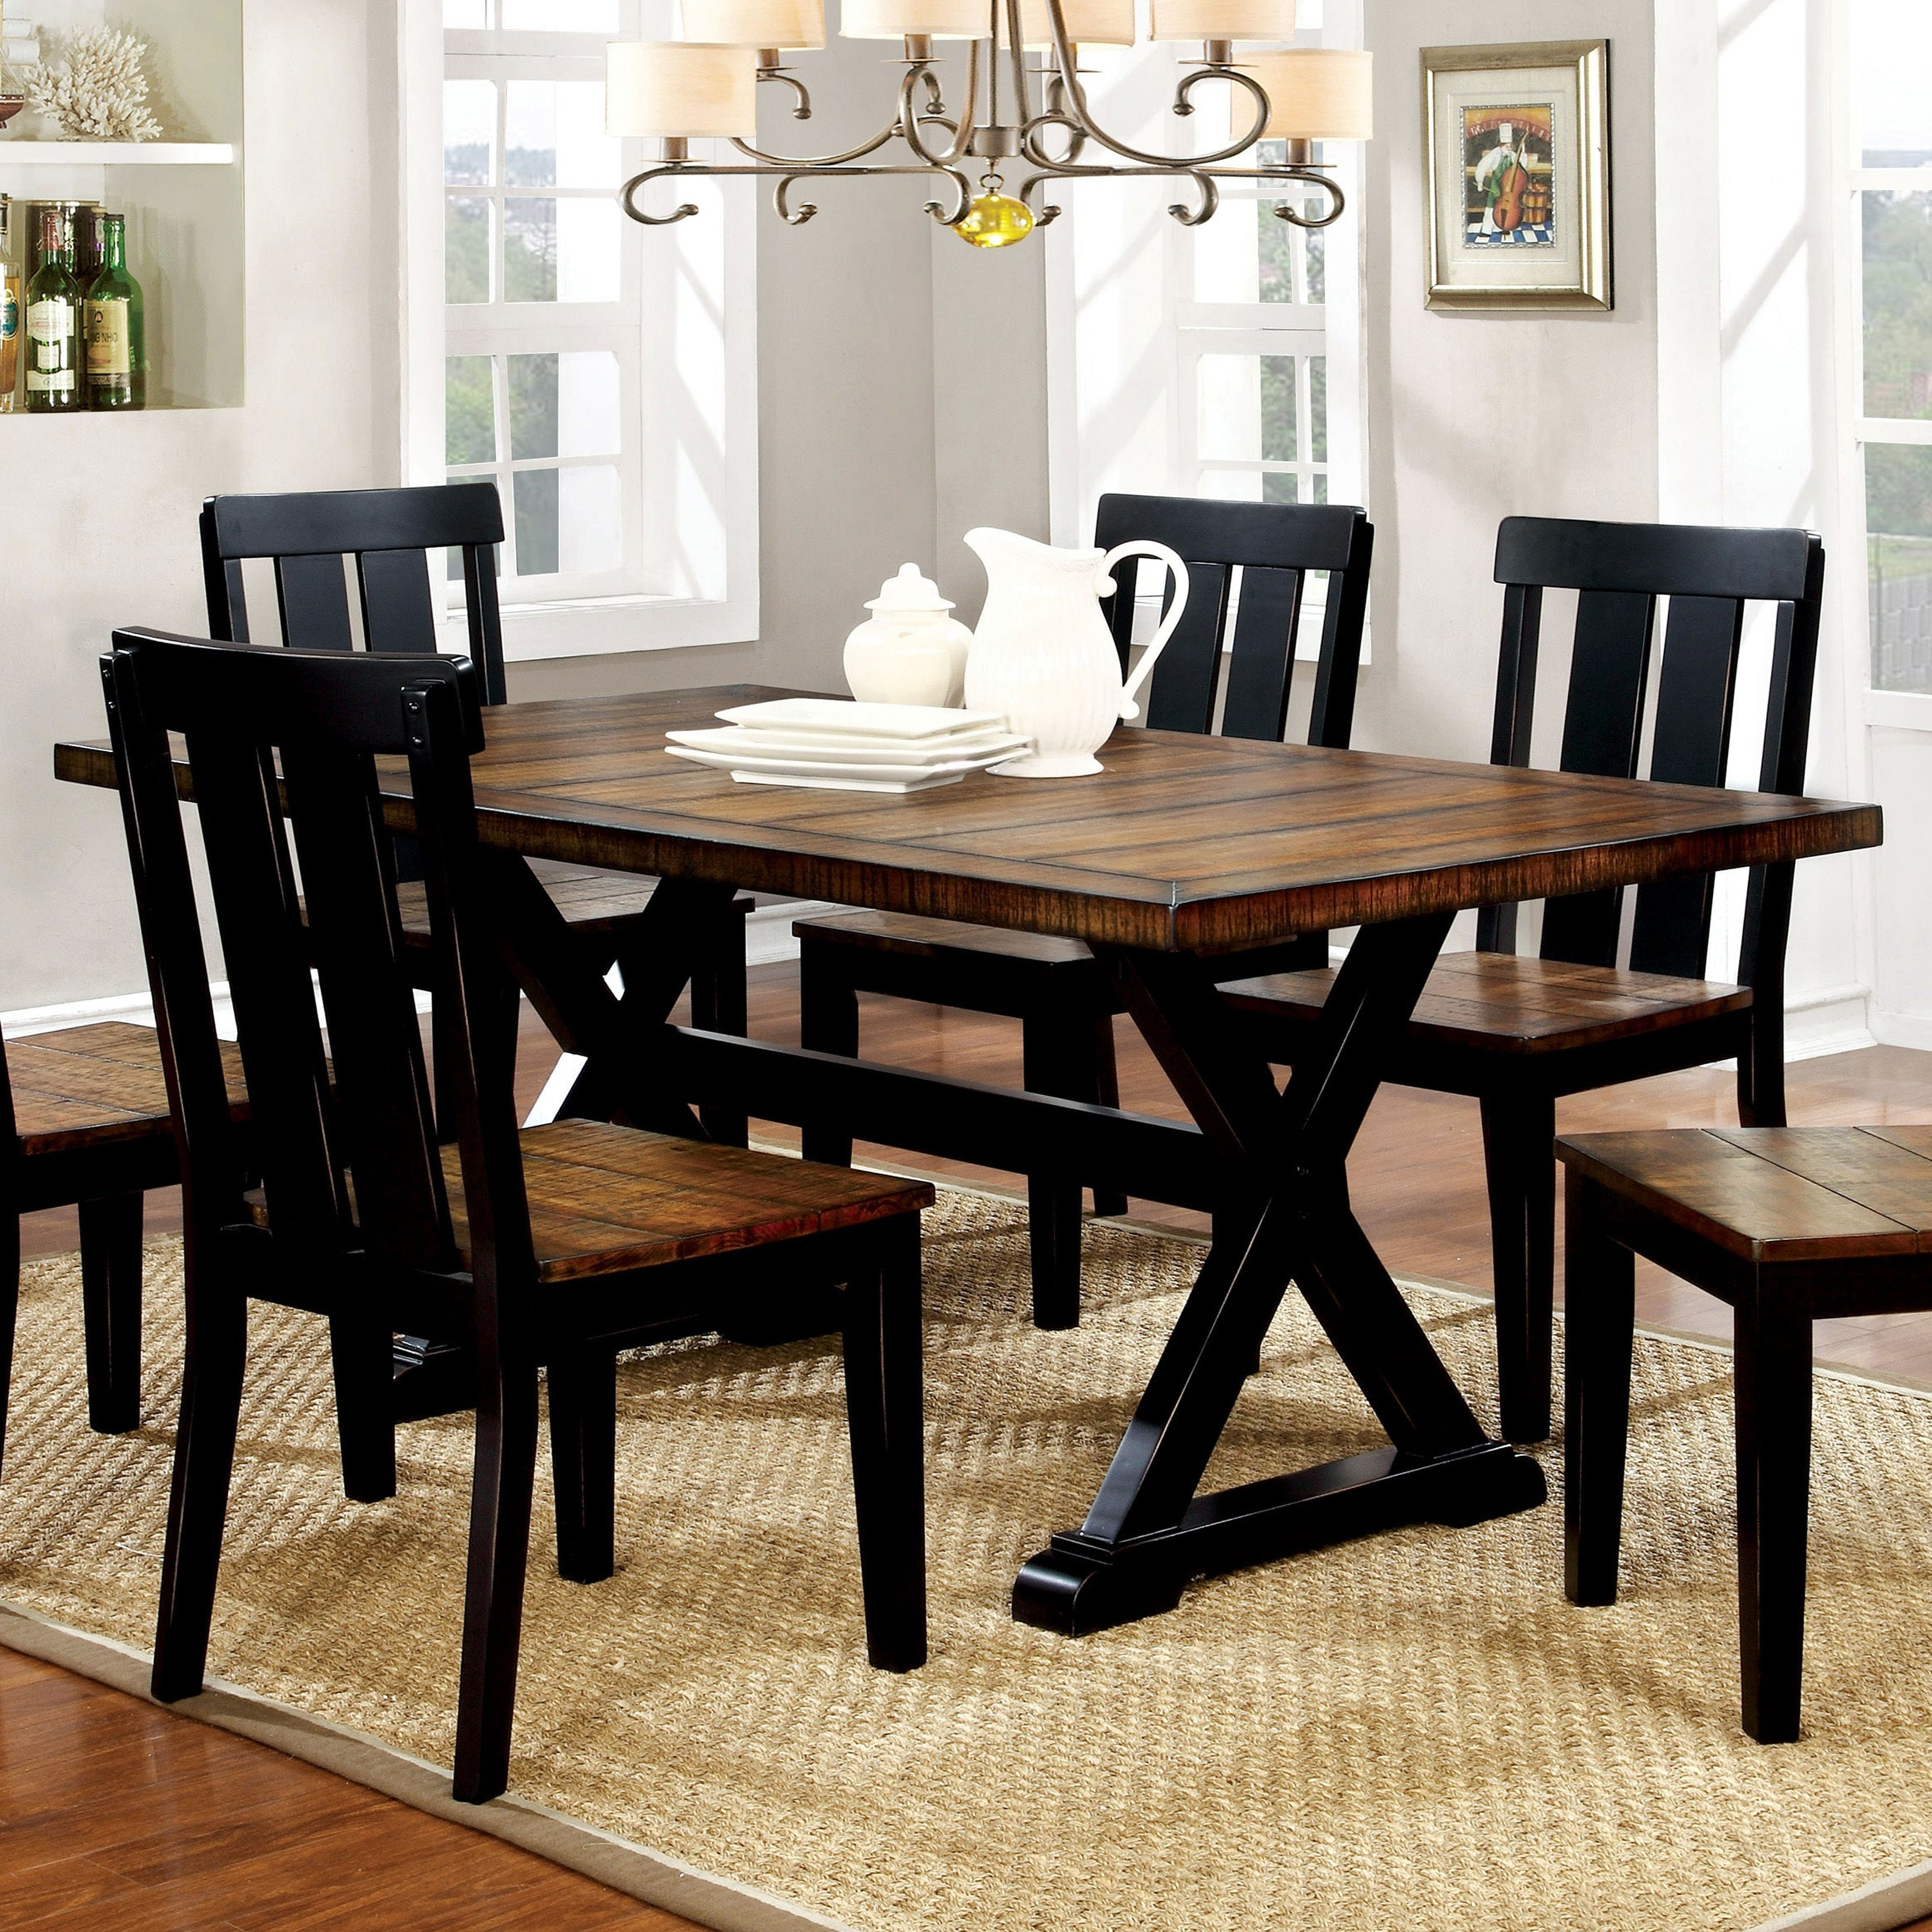 Furniture Of America Lara Farmhouse Black Solid Wood Dining Table Overstock 17520808